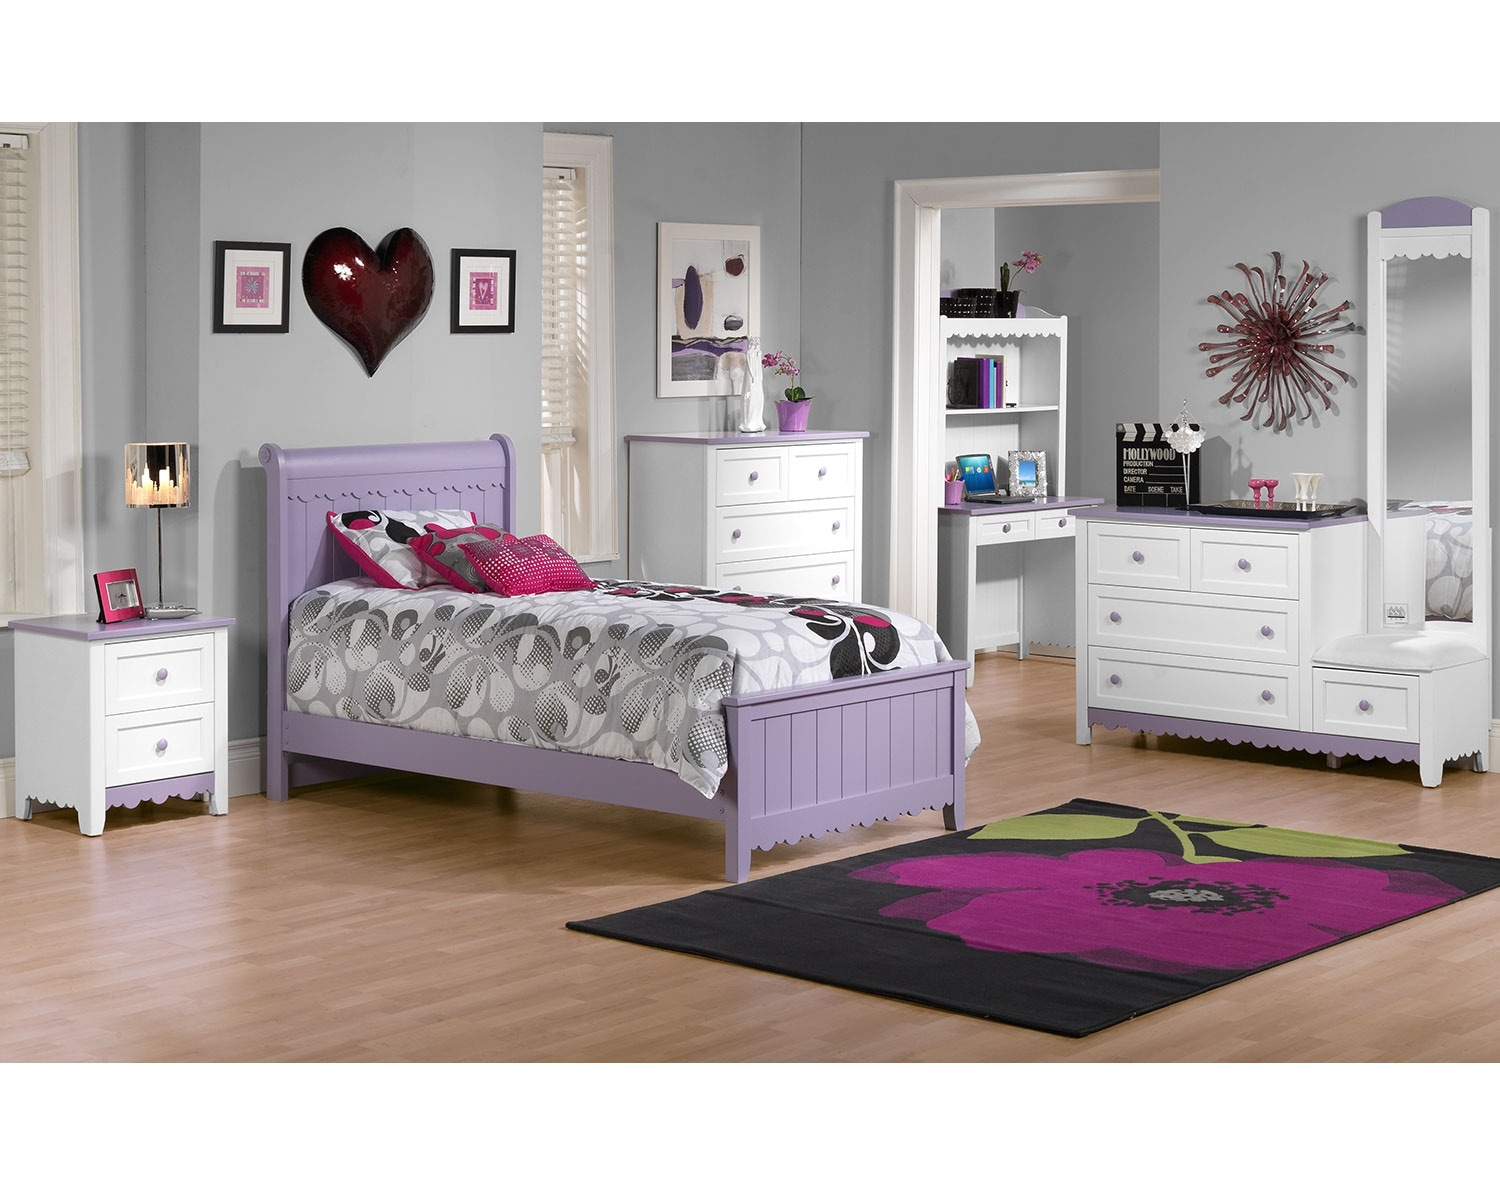 The Sweetdreams Collection - White and Lavender